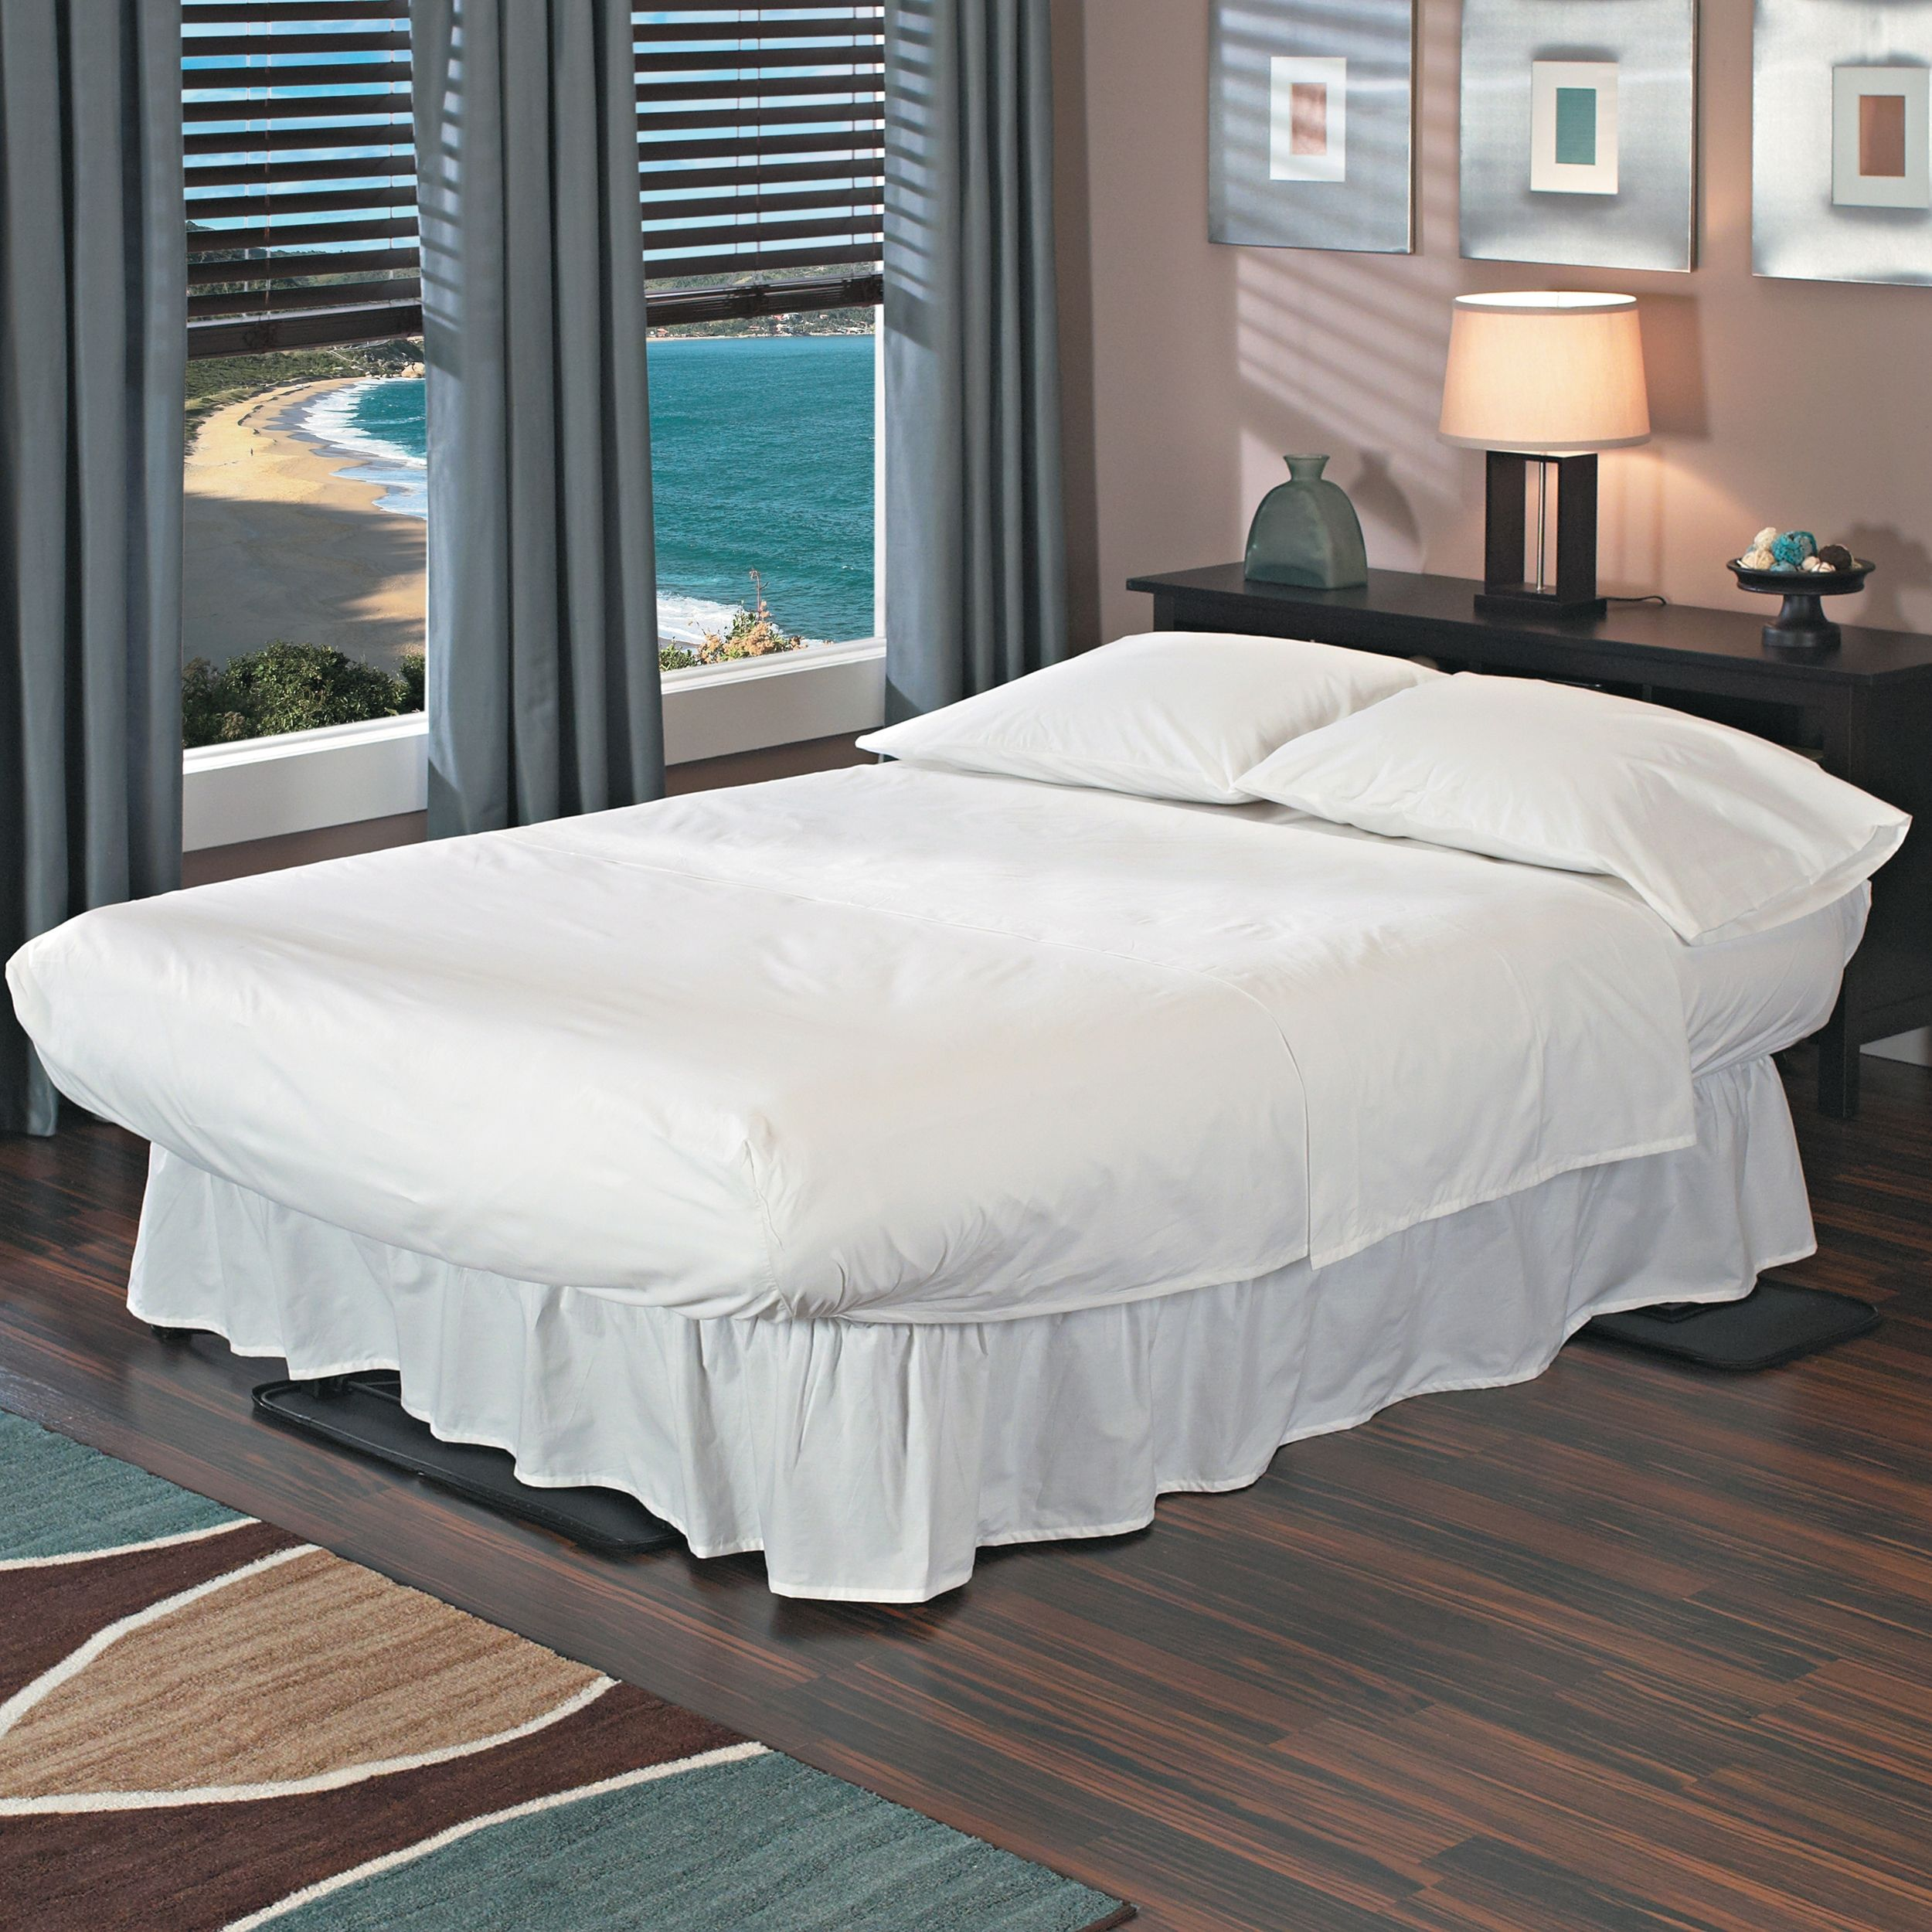 flat queen mattress is bed headboard with itm loading pump image raised never gray insta air frame